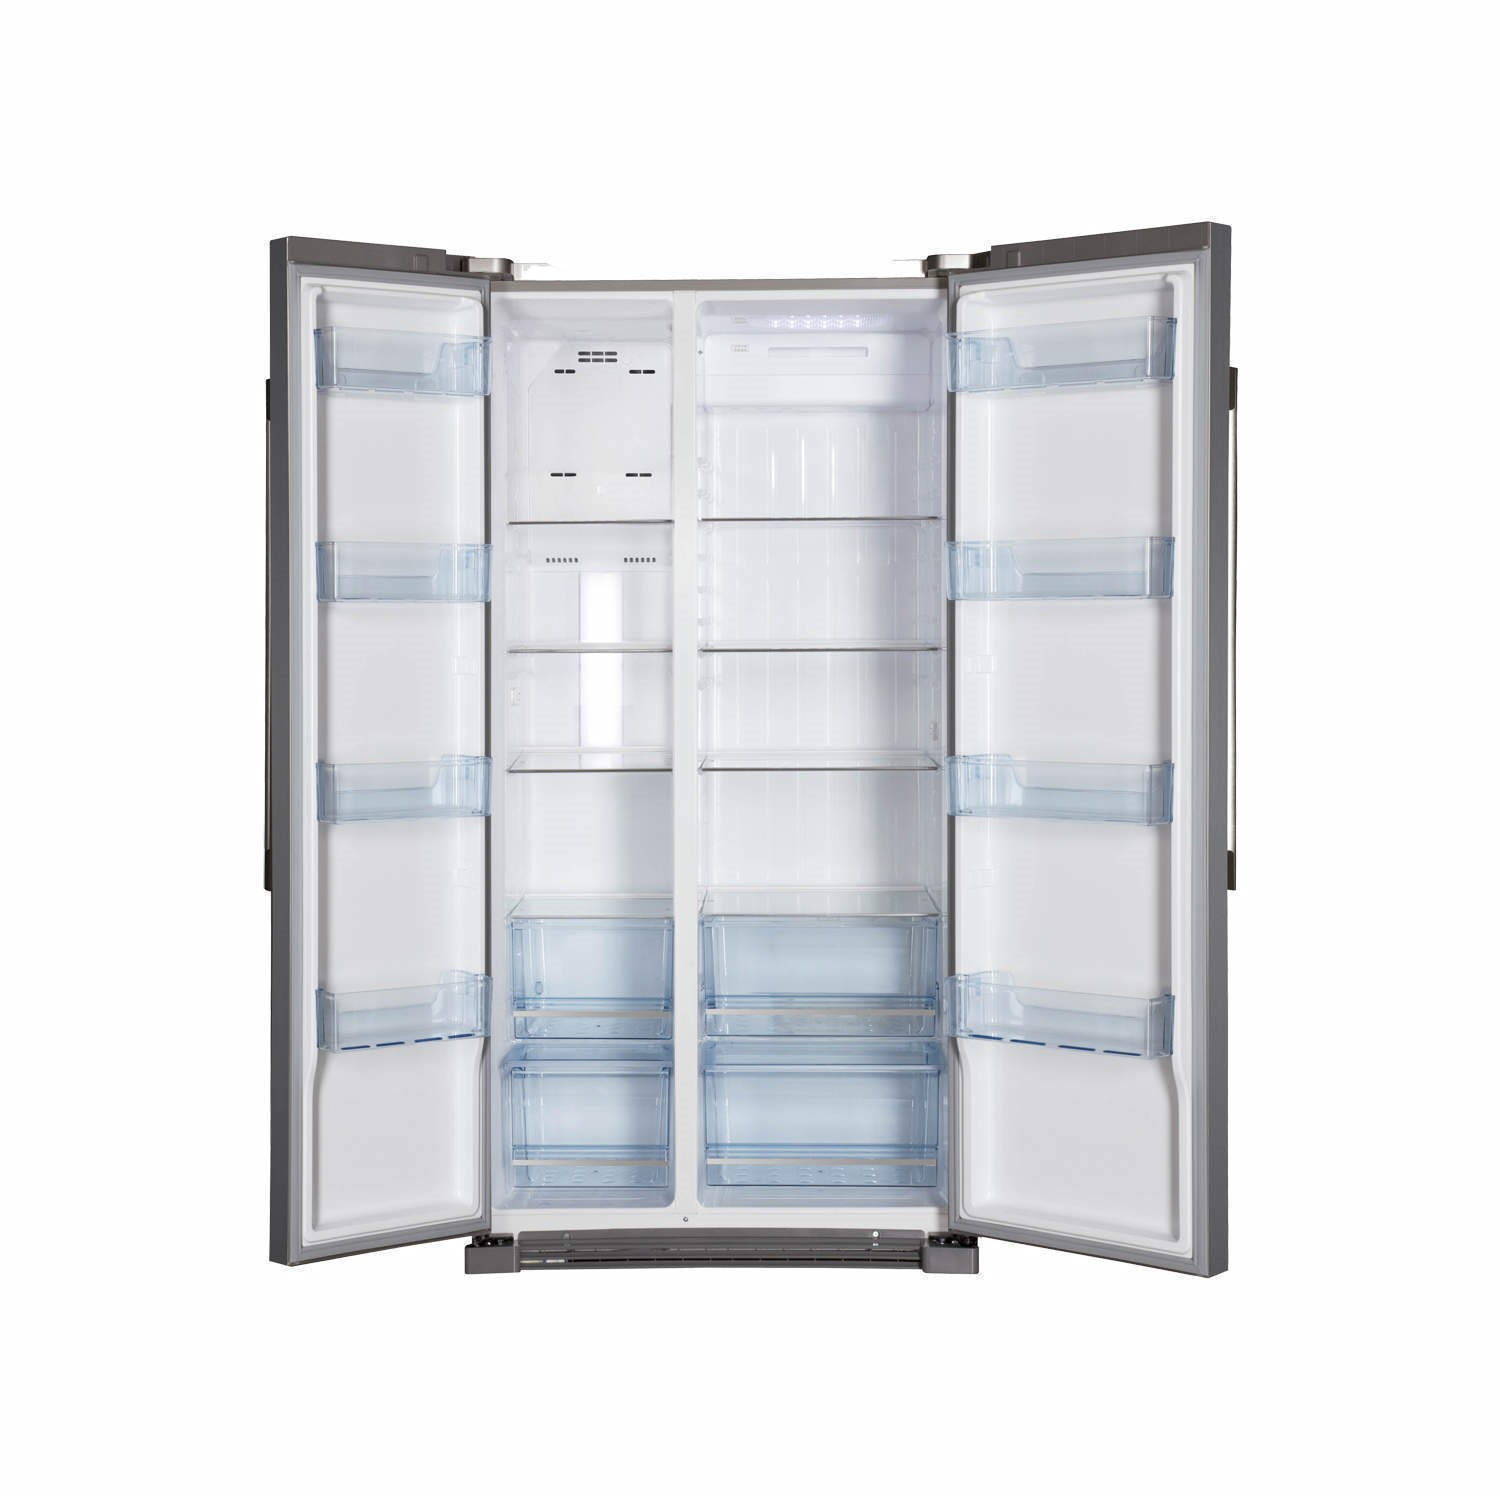 haier hrf628df6 570l frost free american fridge freezer stainless steel look - Frost Free Freezer